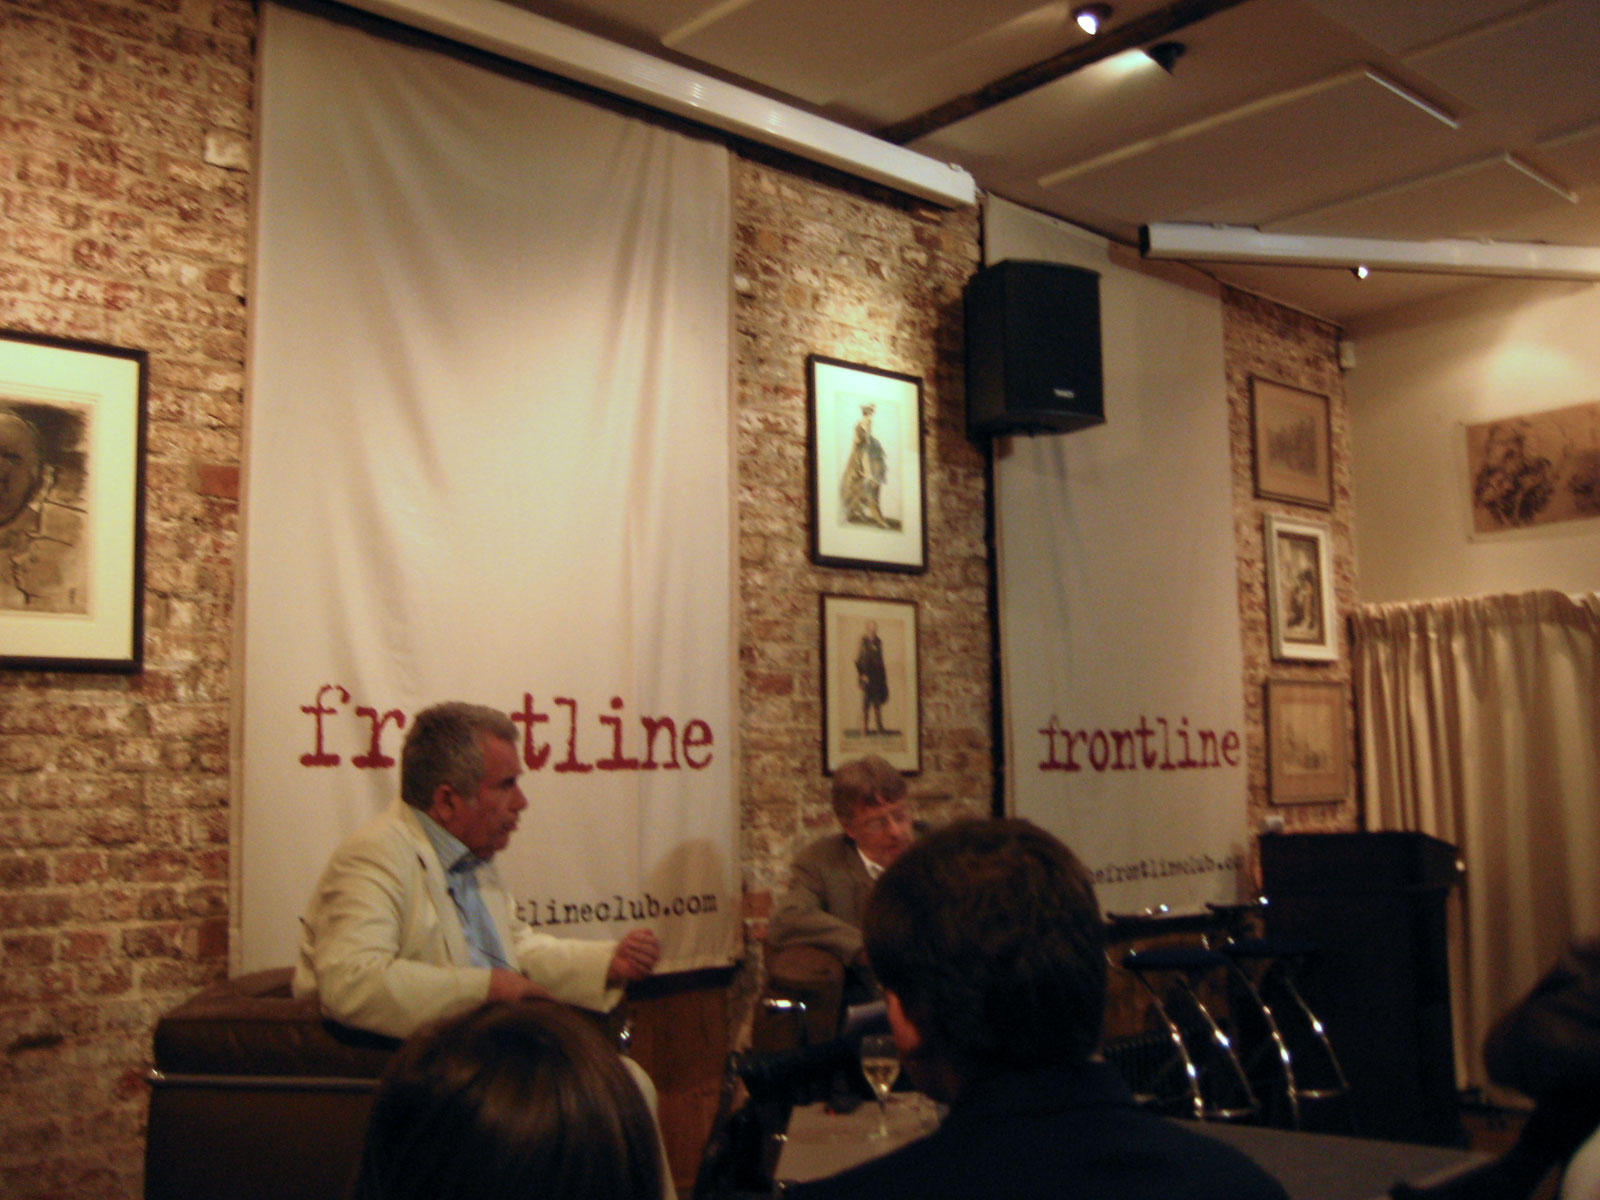 The Frontline Club Rooms